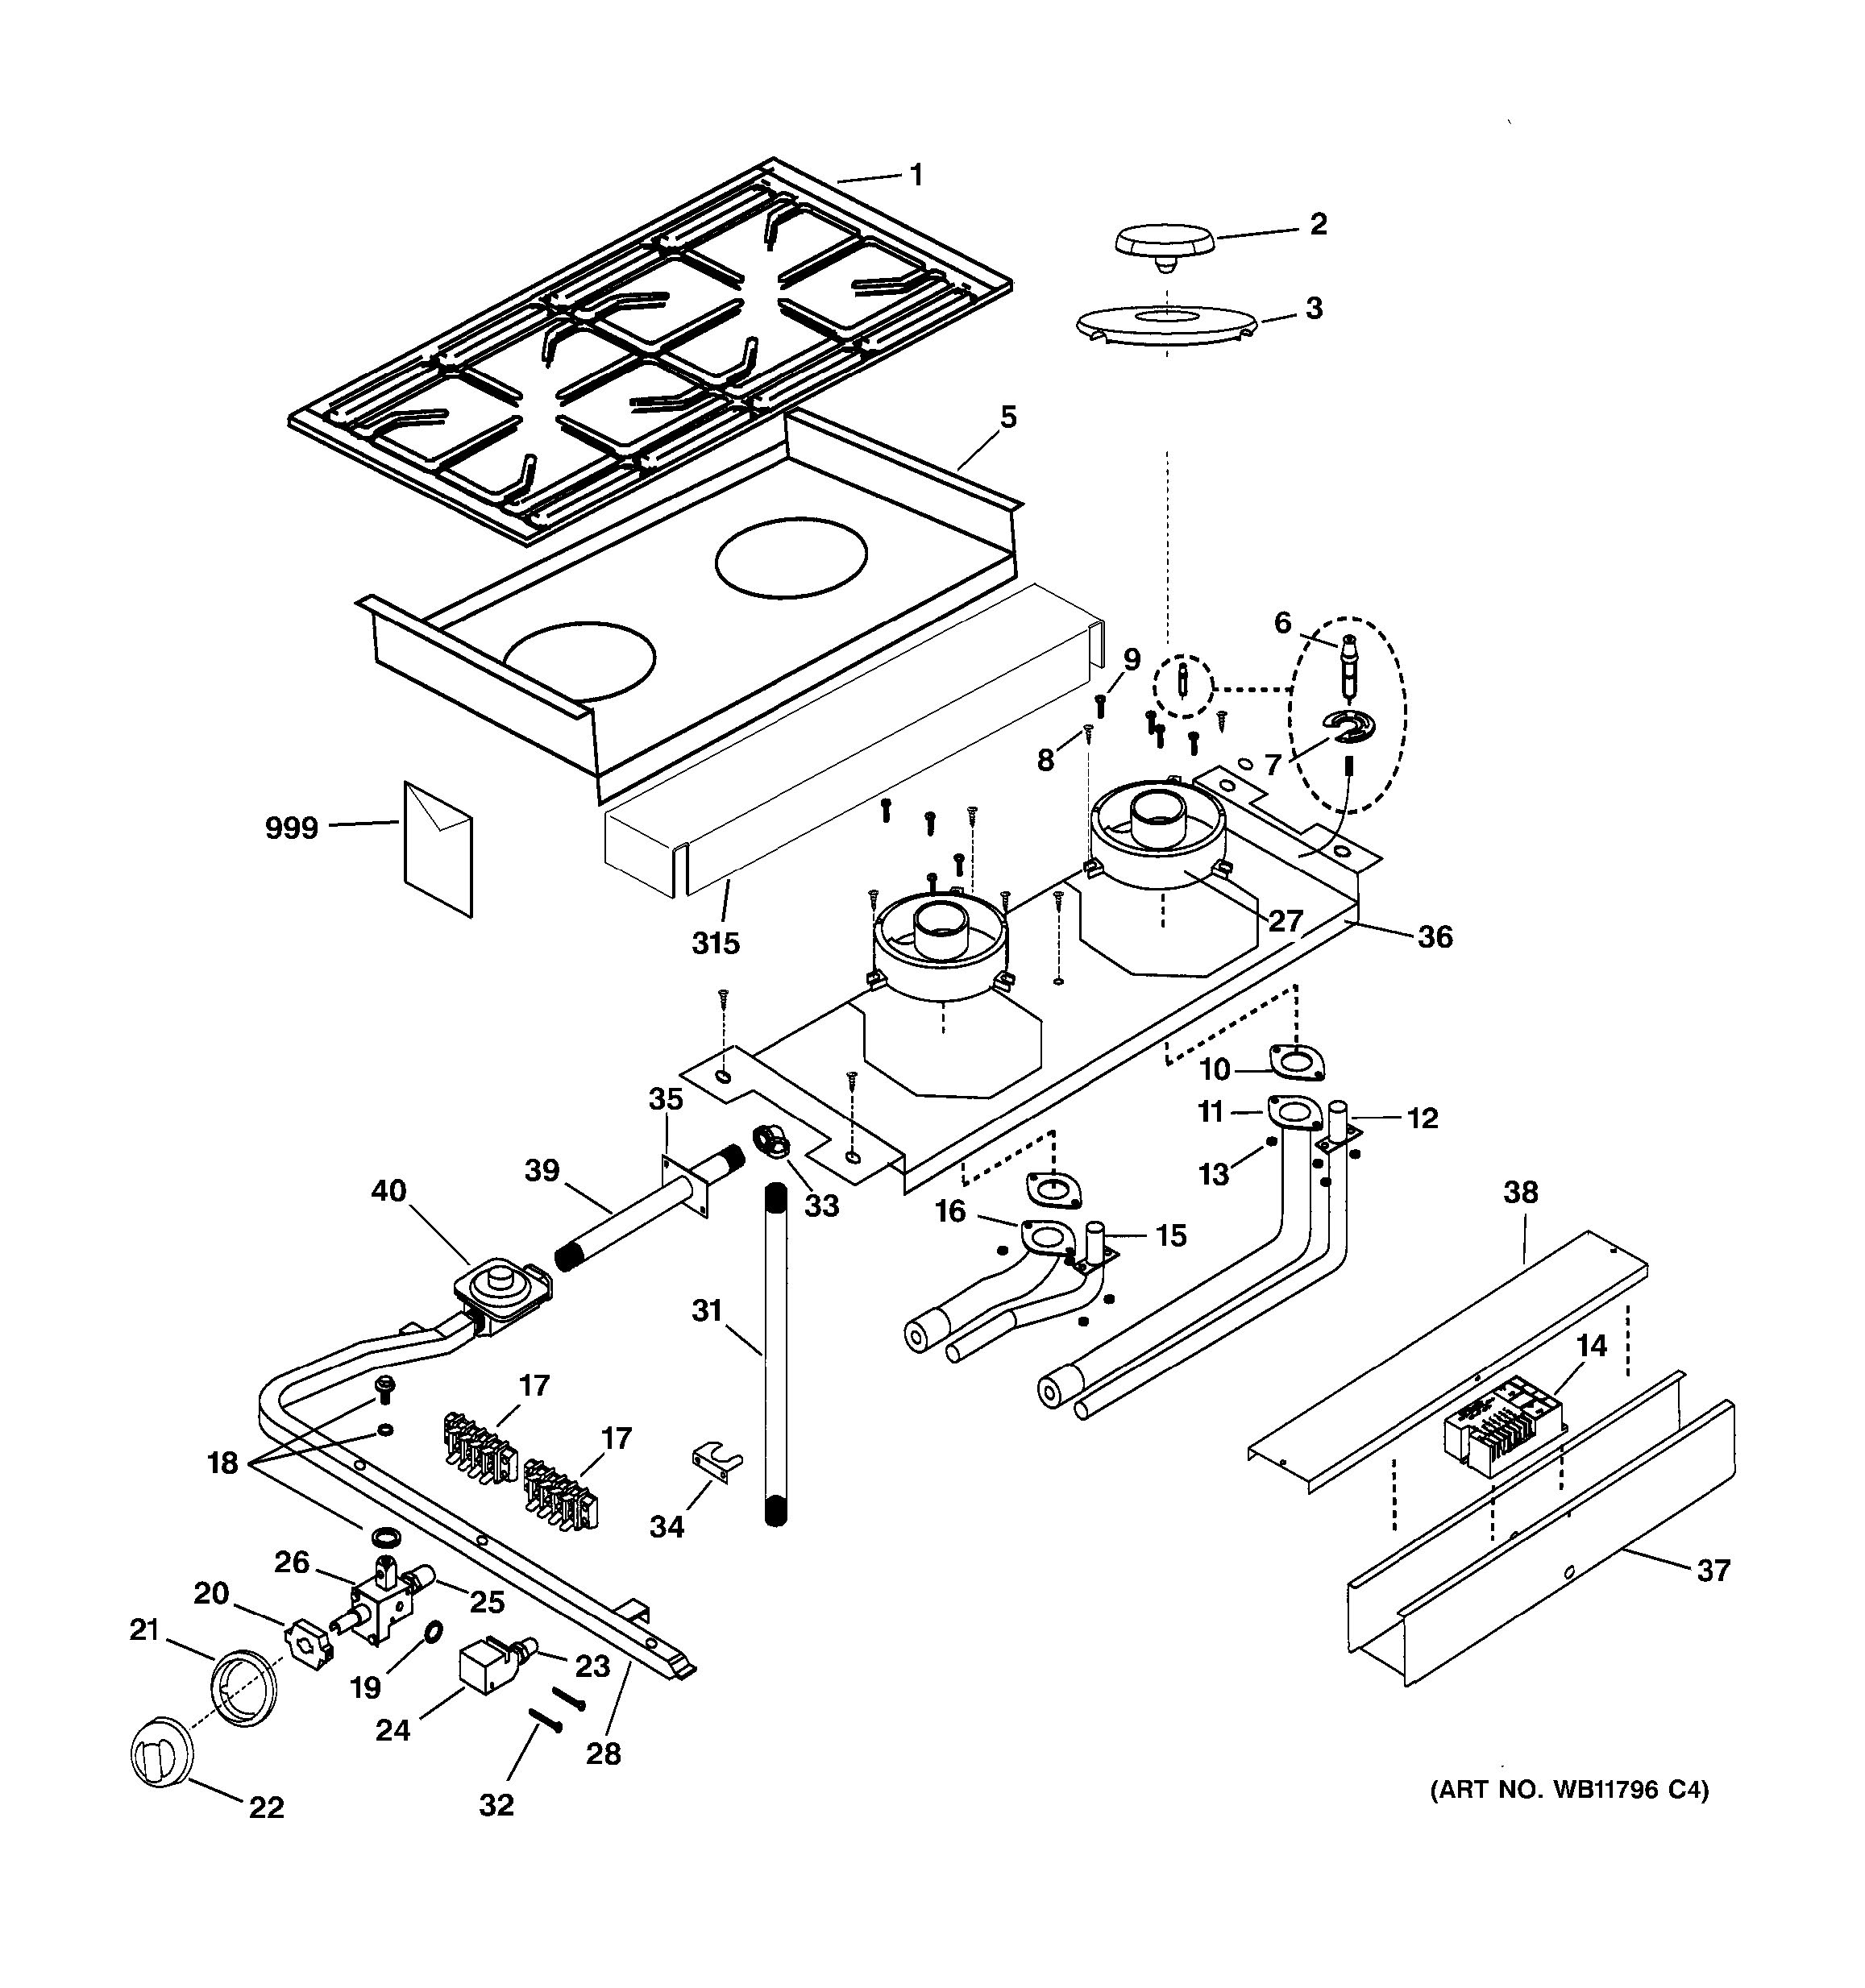 Assembly View For Cooktop Amp Burner Parts